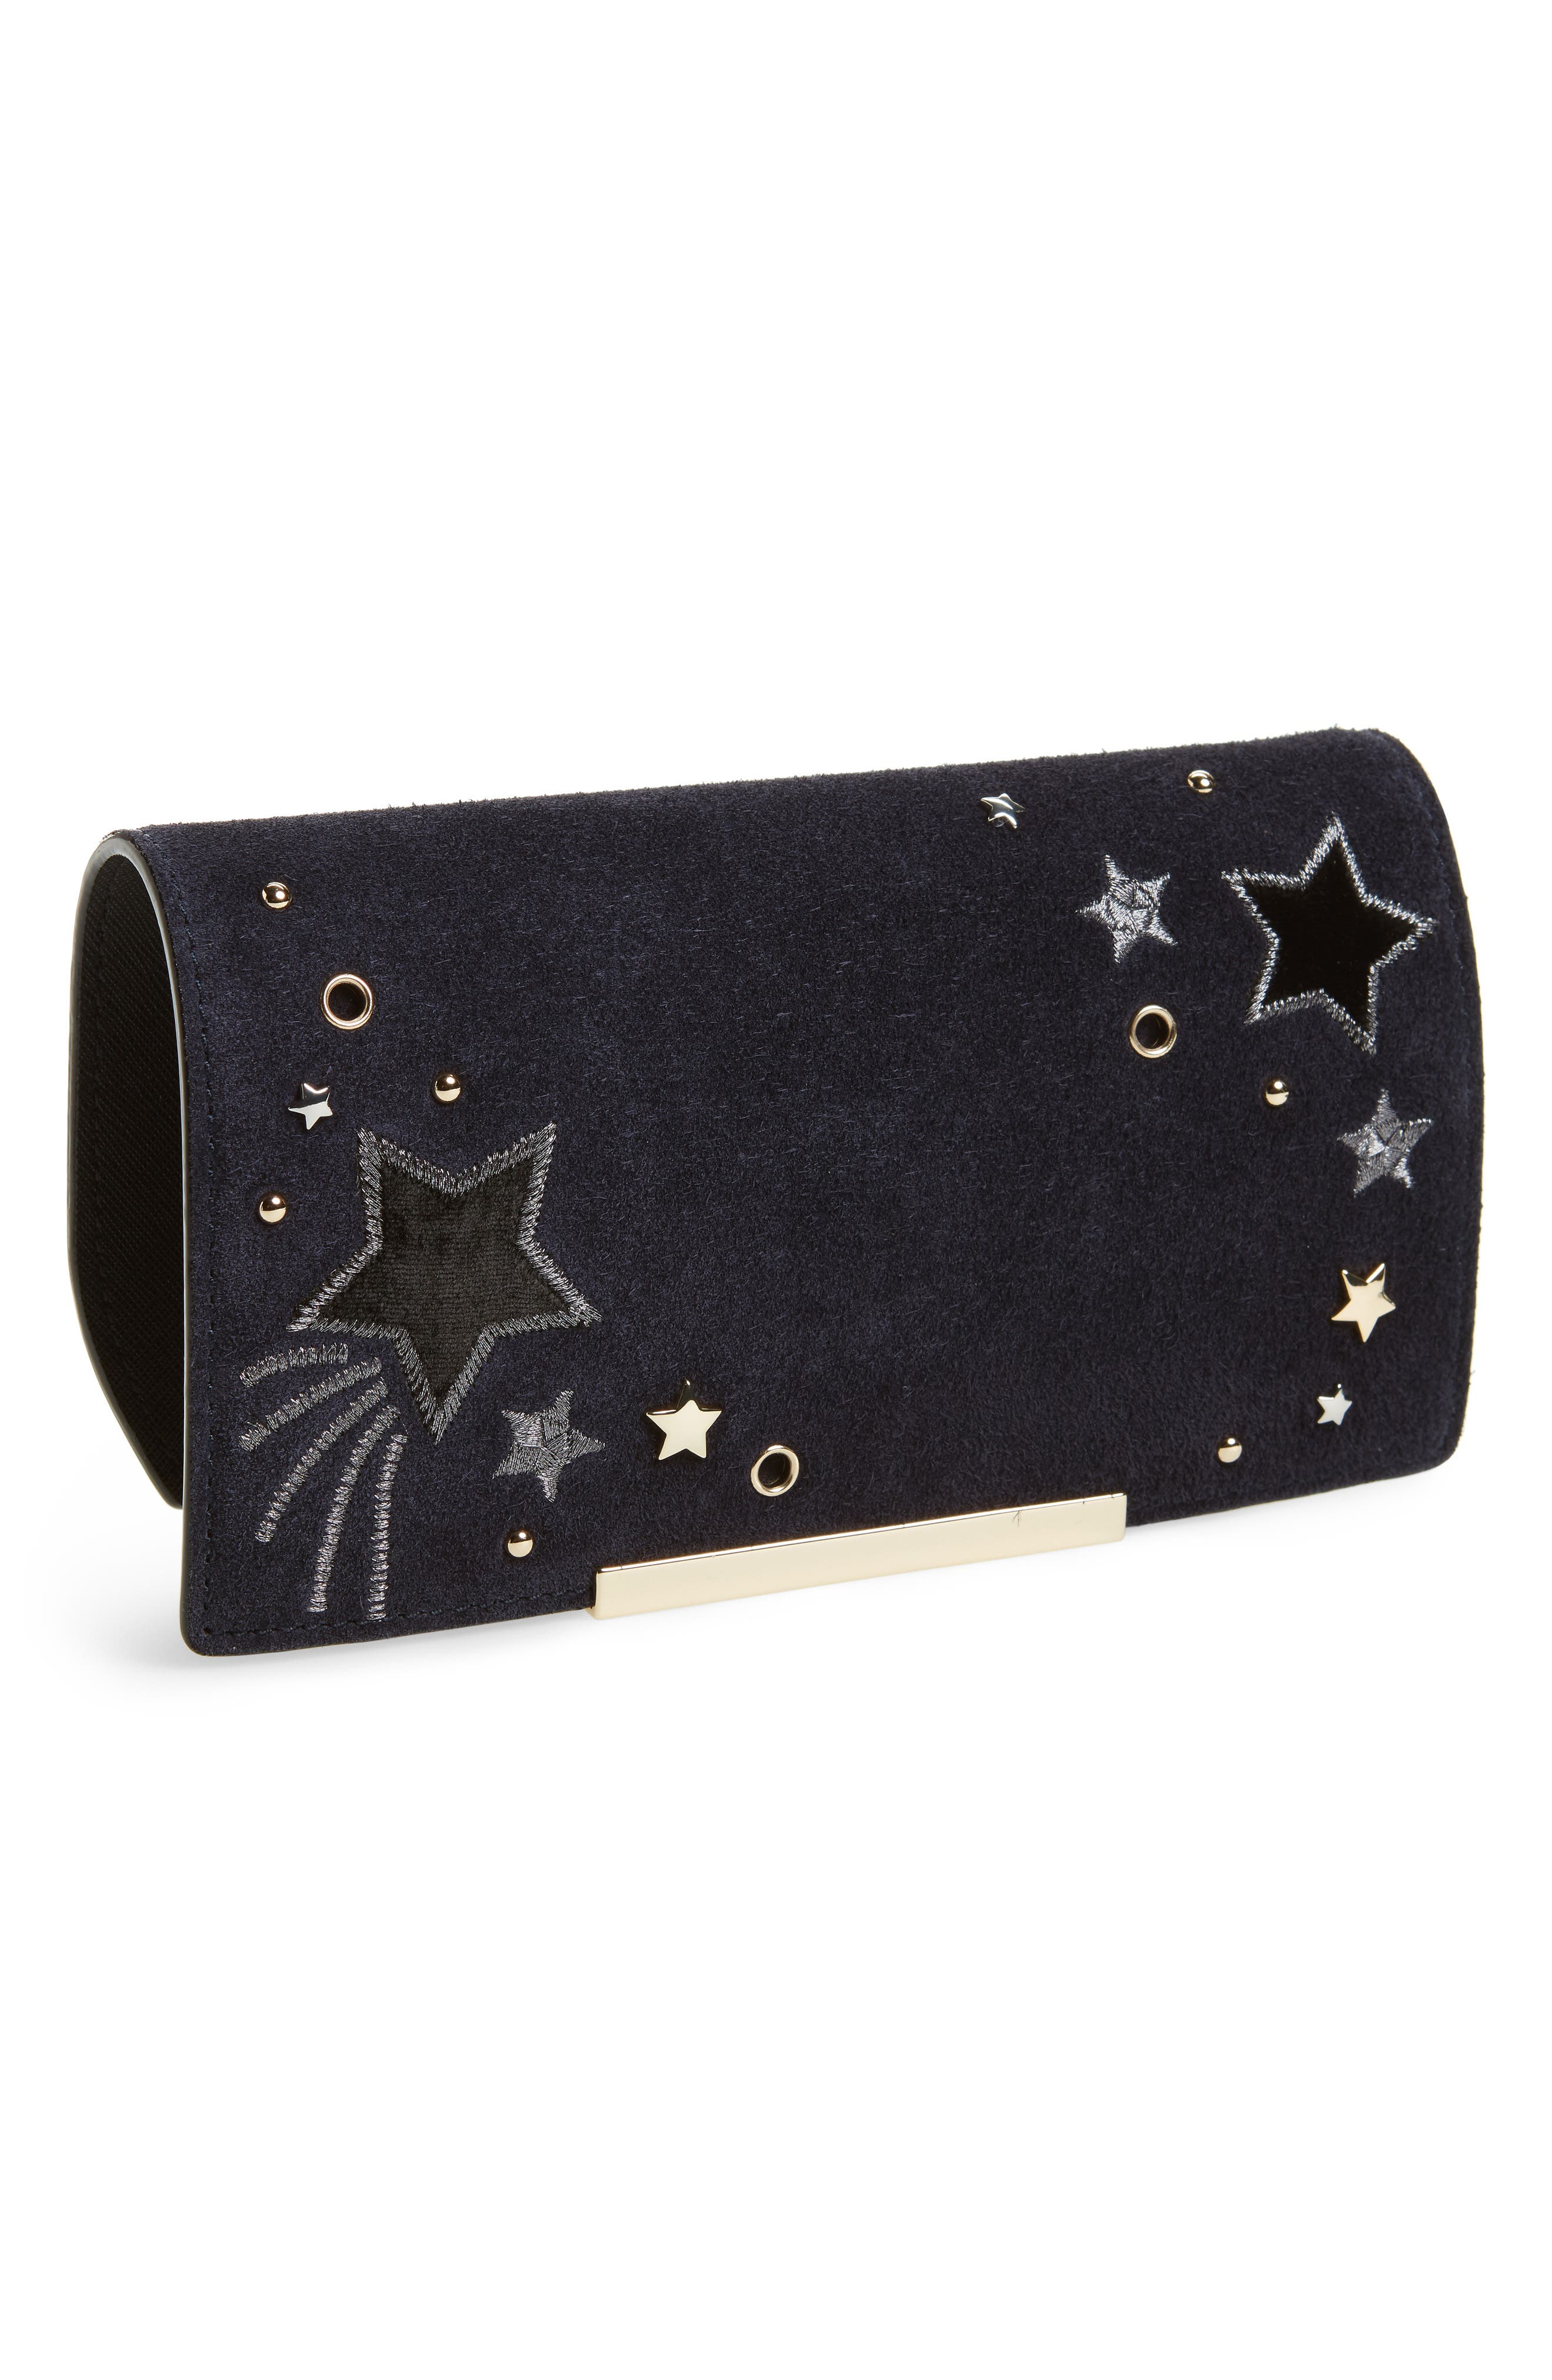 make it mine star embellished snap-on accent flap,                             Main thumbnail 1, color,